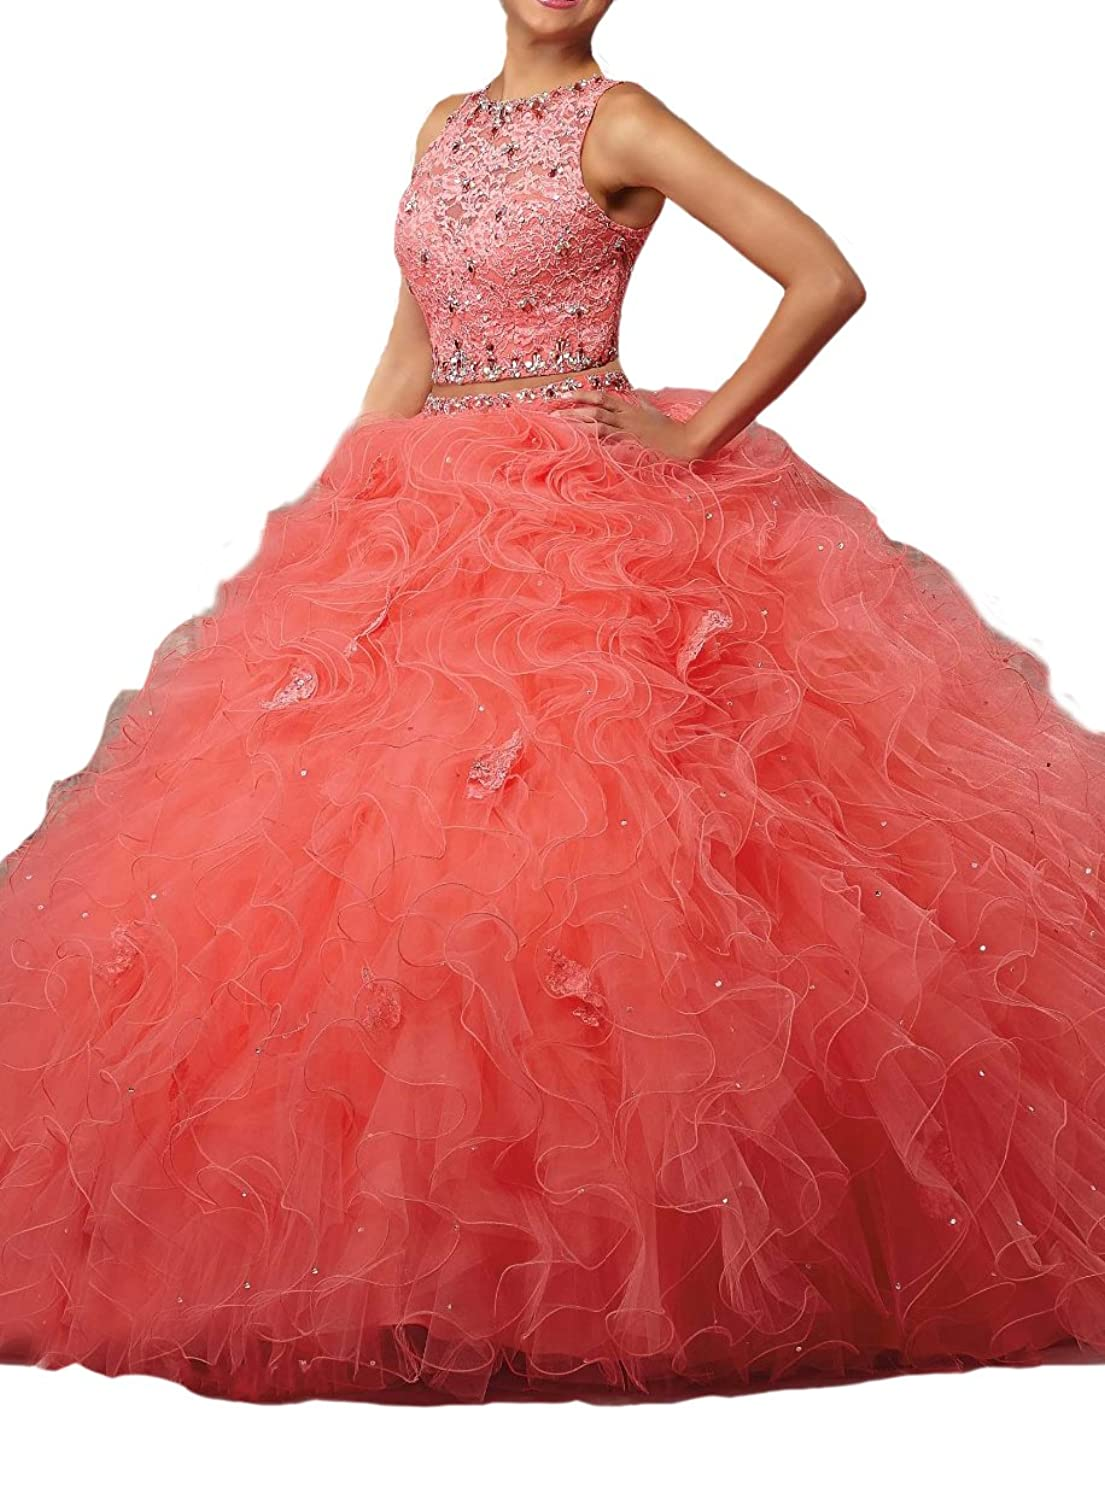 Engerla Women's Beaded Lace Princess Ball Gown Two Pieces Ruffles Organza Quinceanera Dress